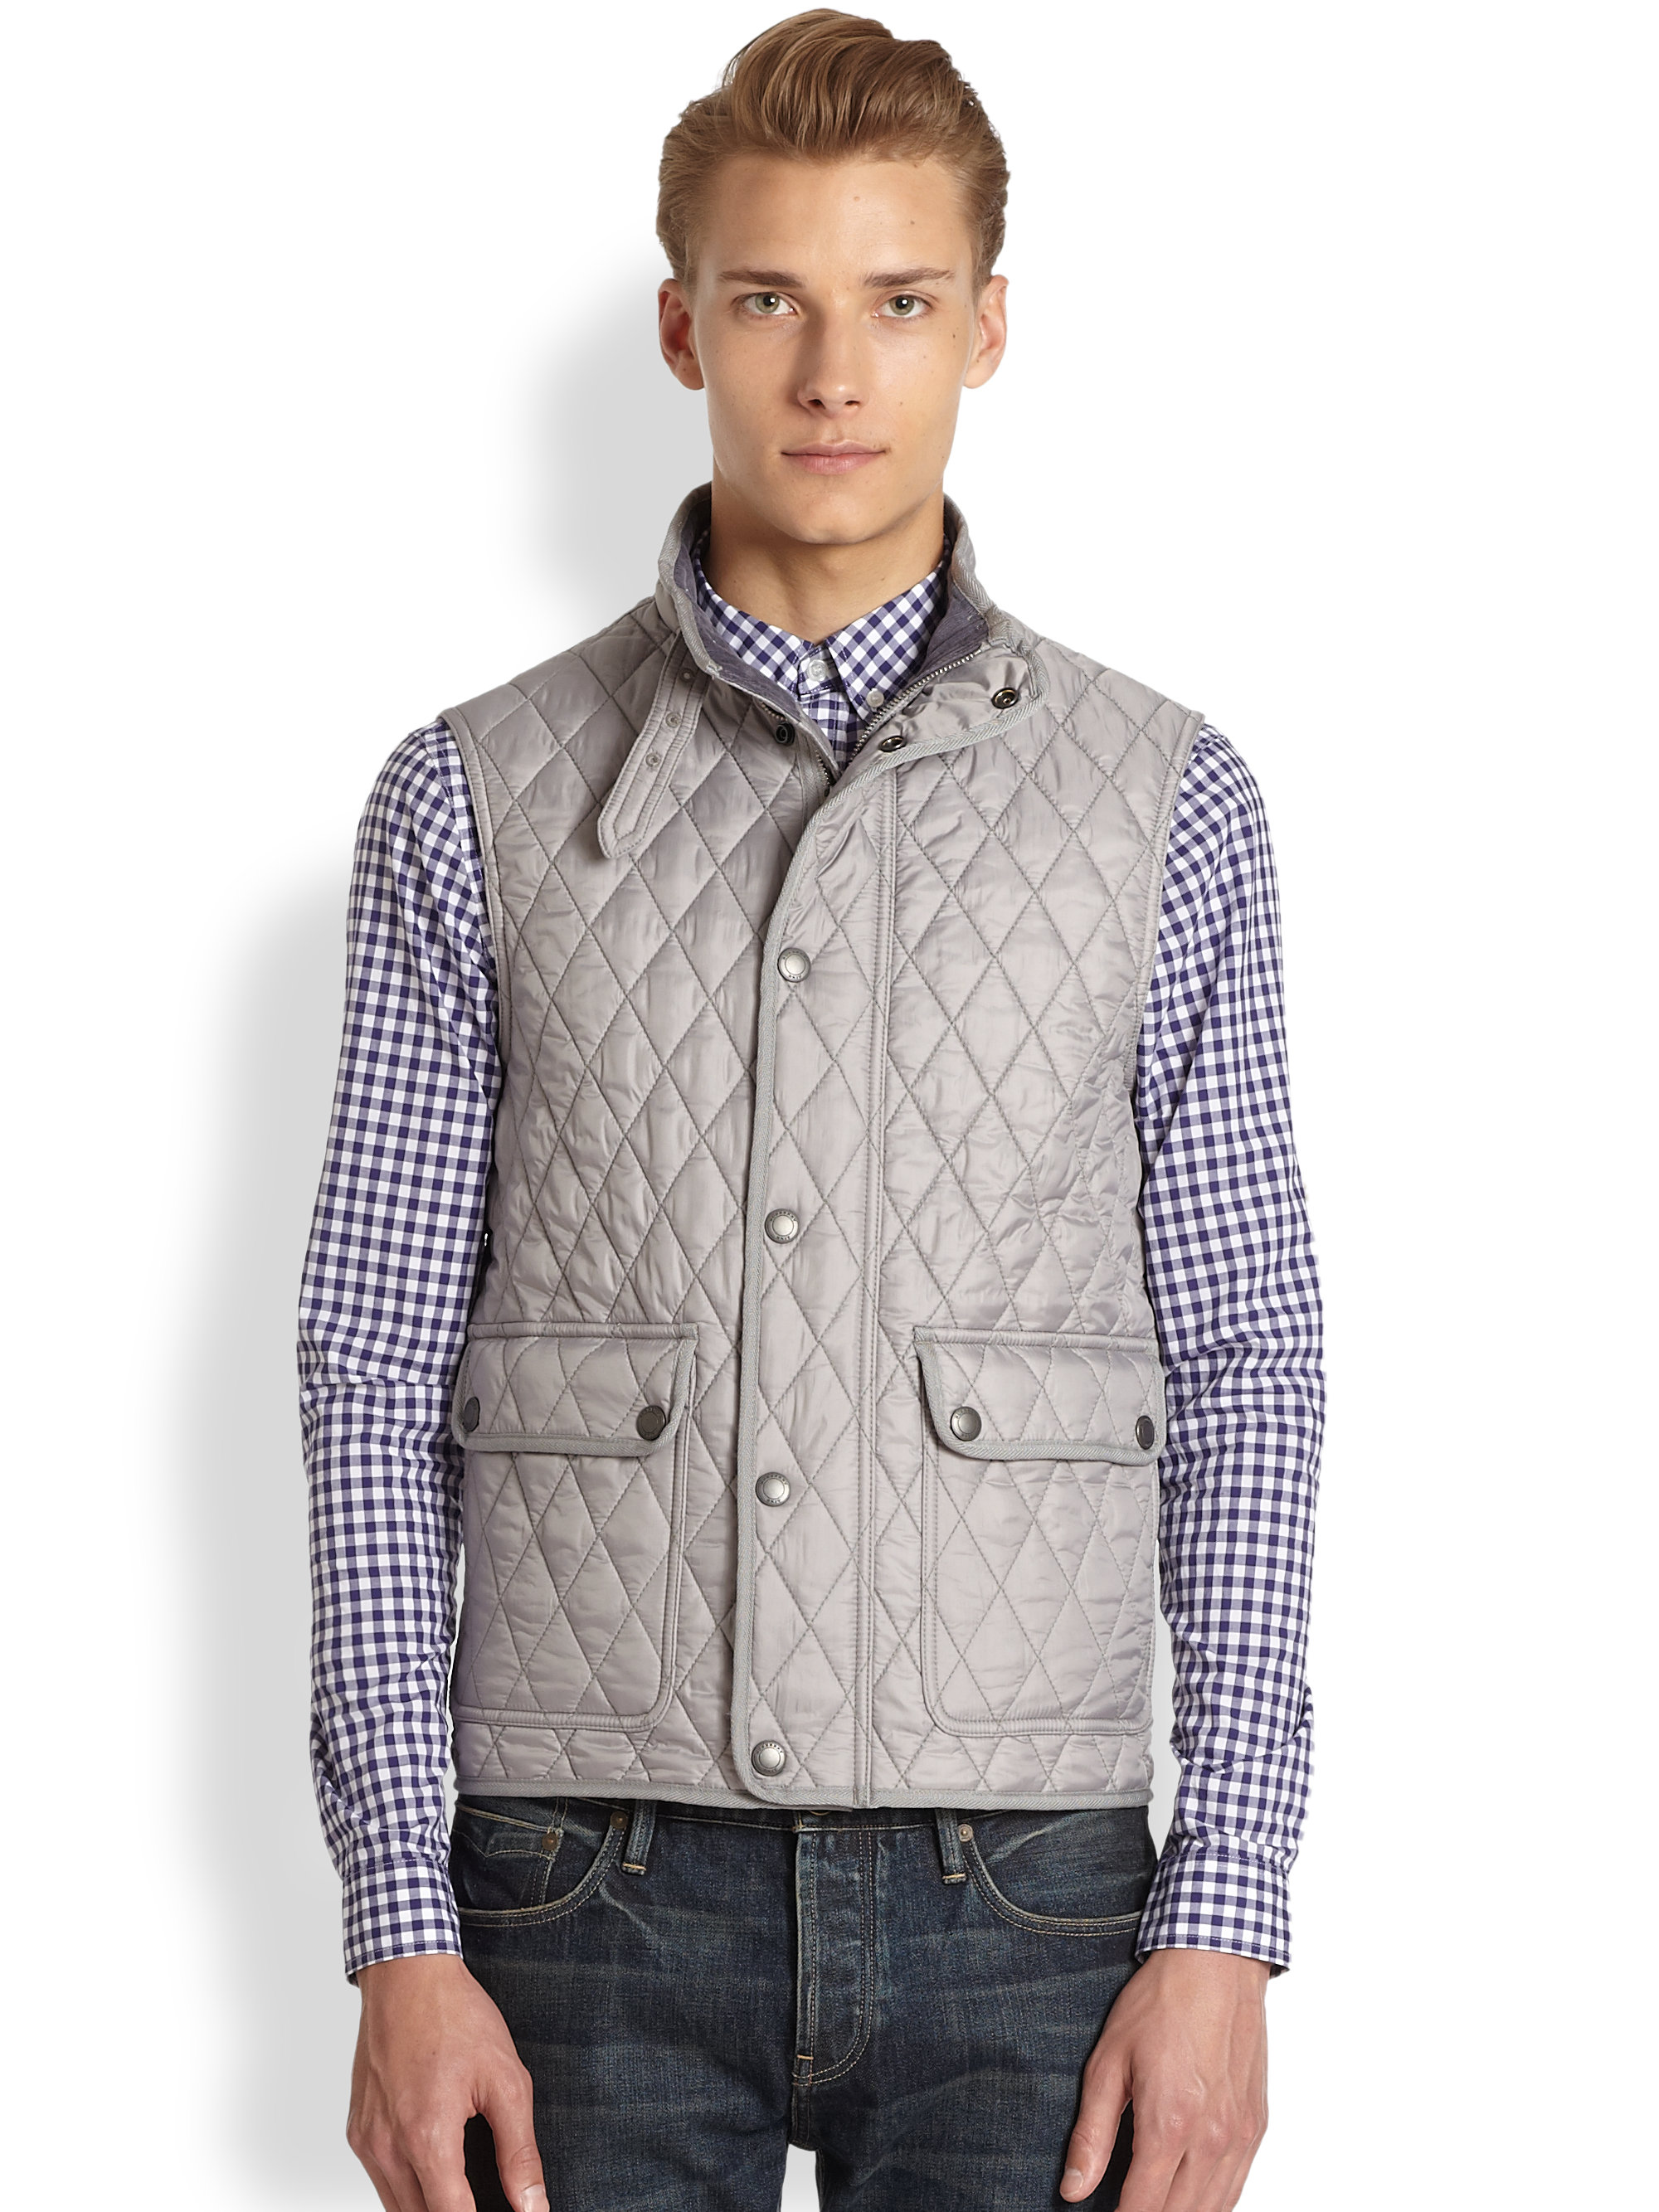 in gallery mens navy burberry quilt quilted jacket image diamond women